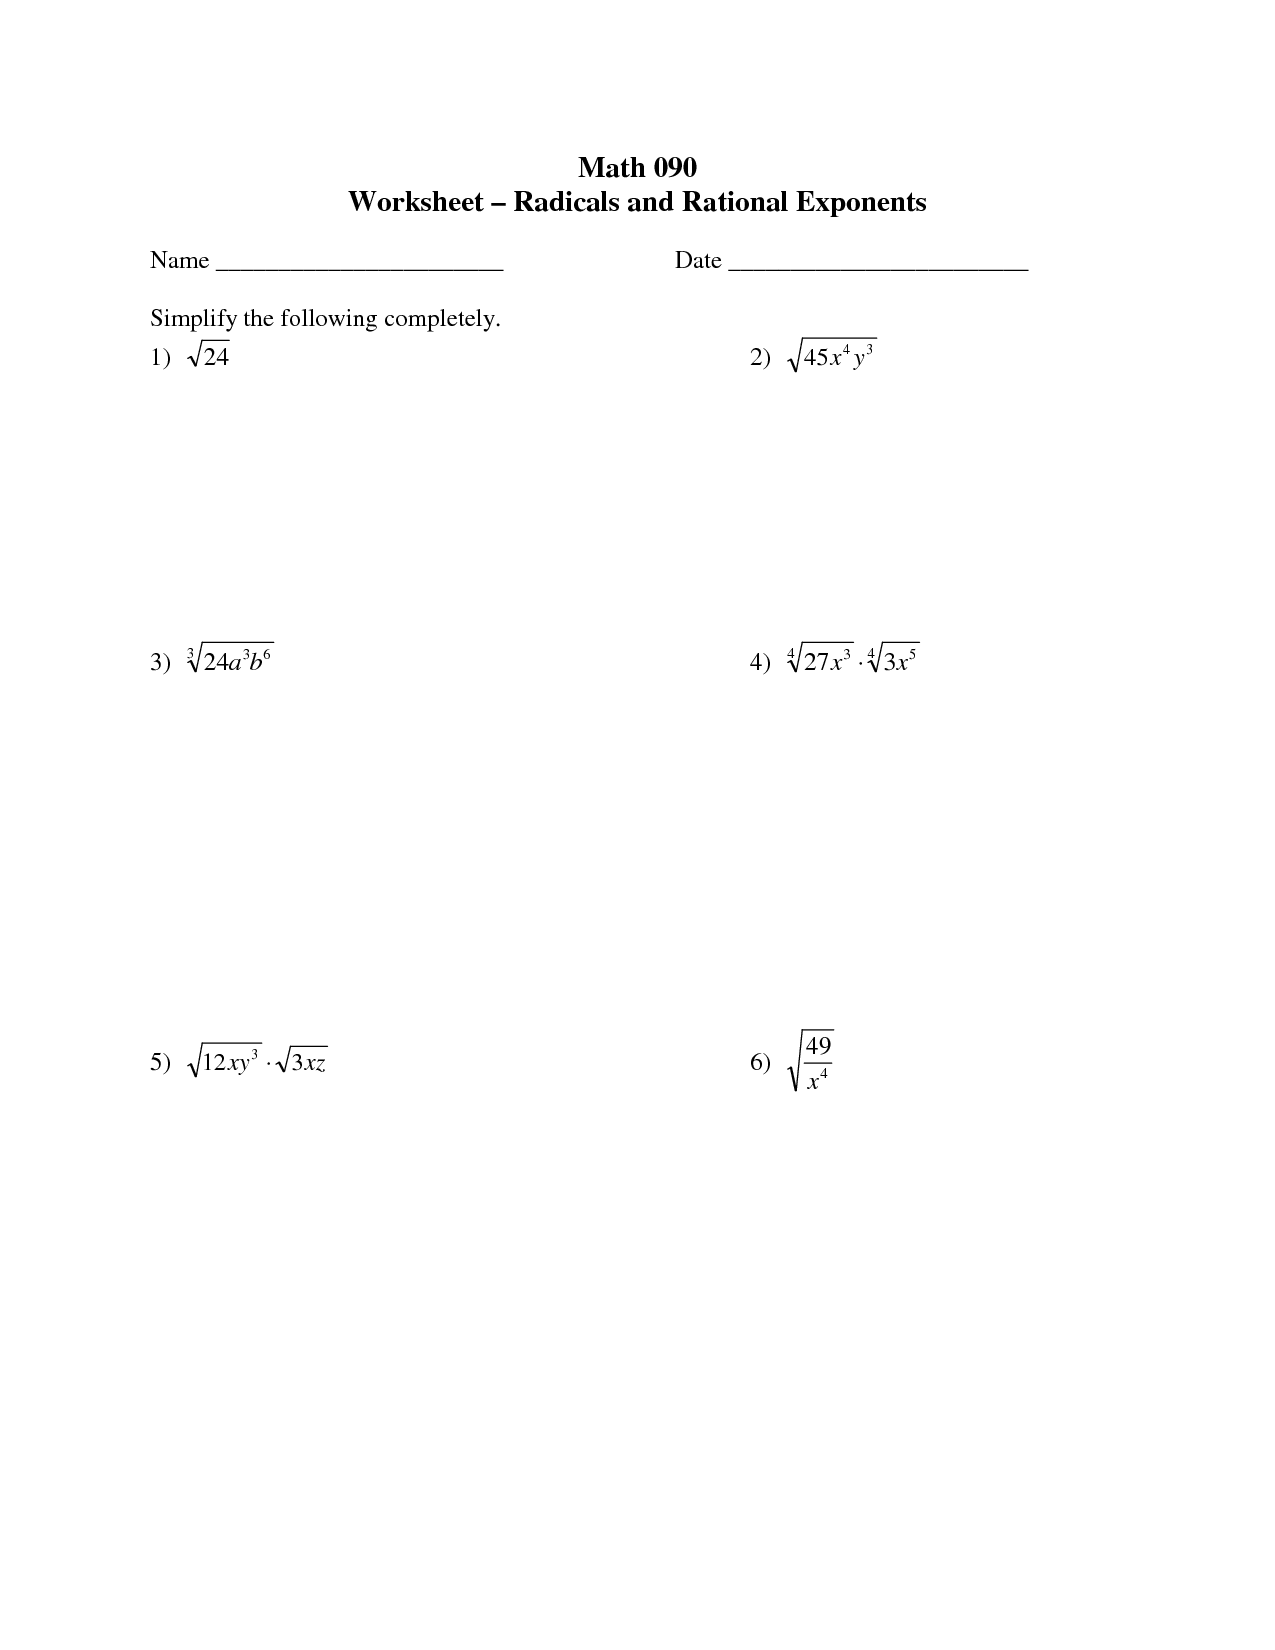 Radicals With Exponents Math 090 Worksheet